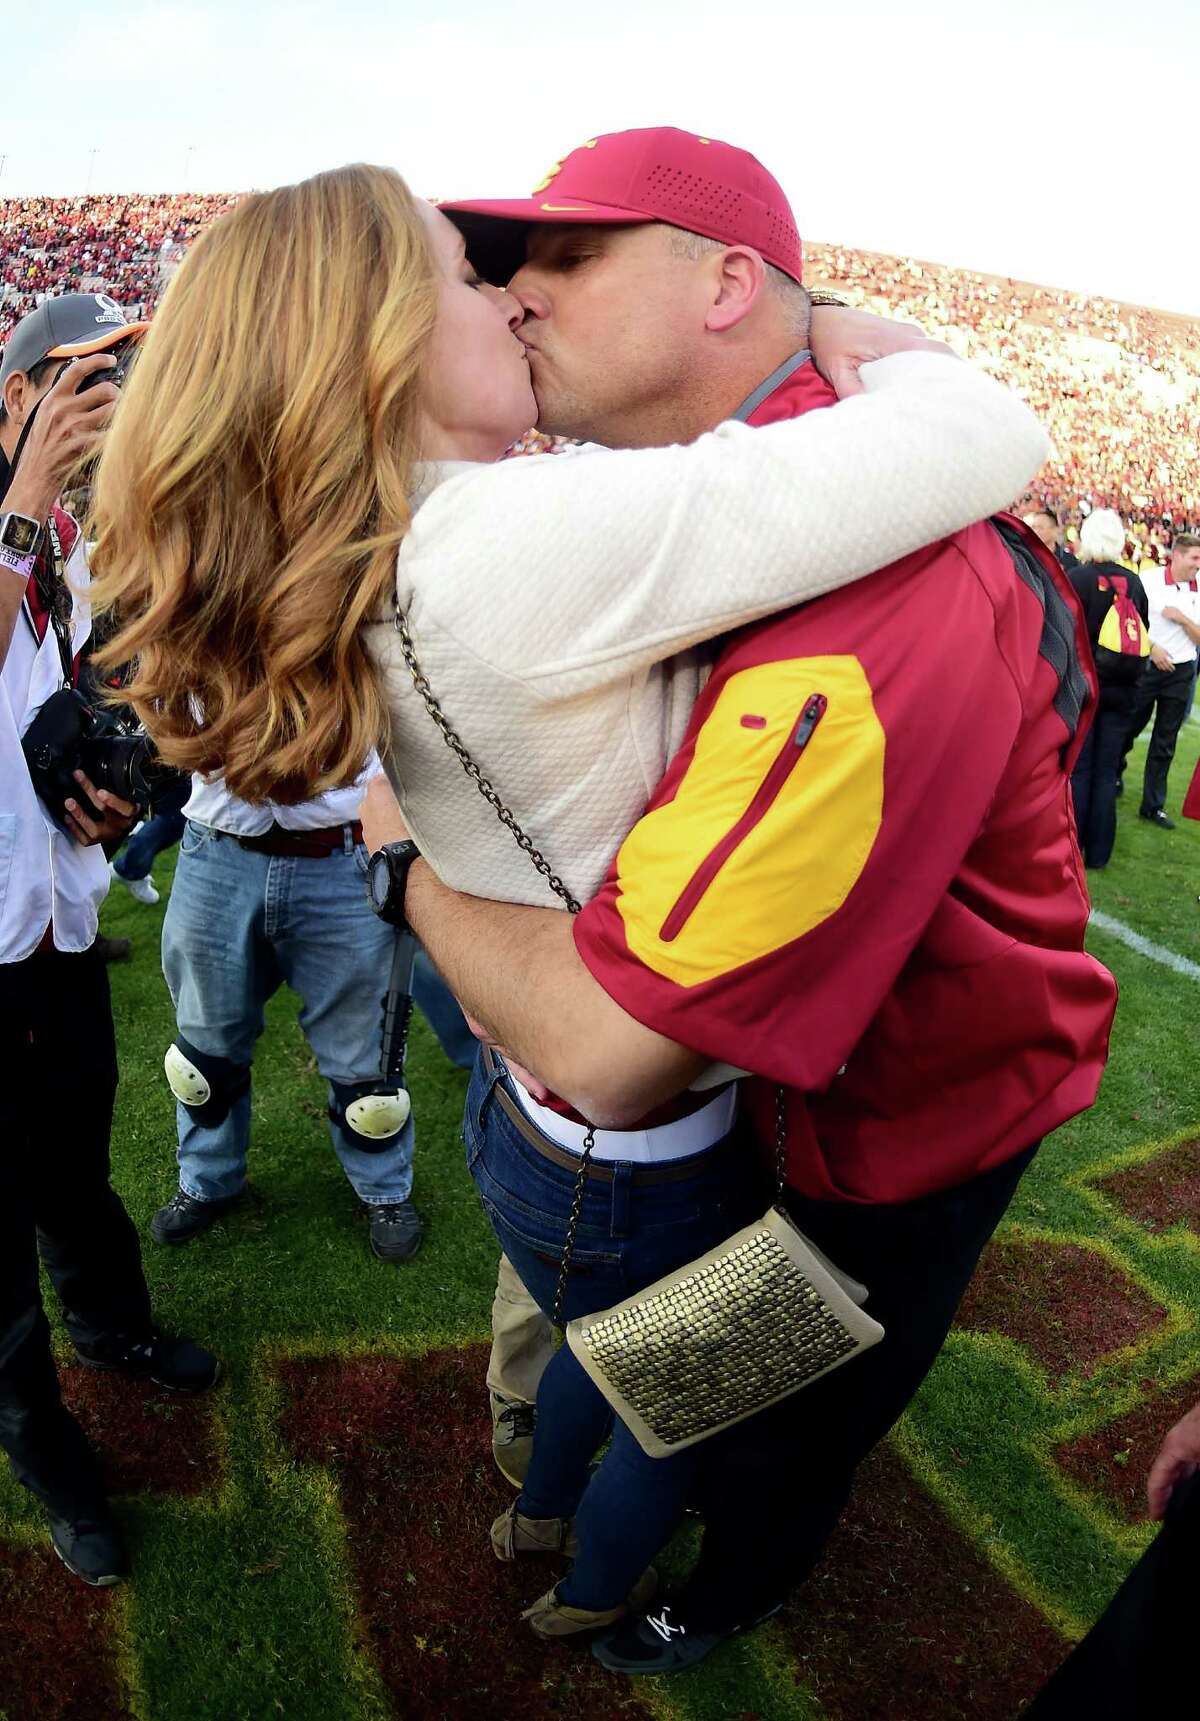 LOS ANGELES, CA - NOVEMBER 28: Head coach Clay Helton of the USC Trojans and his wife Angela kiss after a 40-21 win over the UCLA Bruins at Los Angeles Memorial Coliseum on November 28, 2015 in Los Angeles, California.